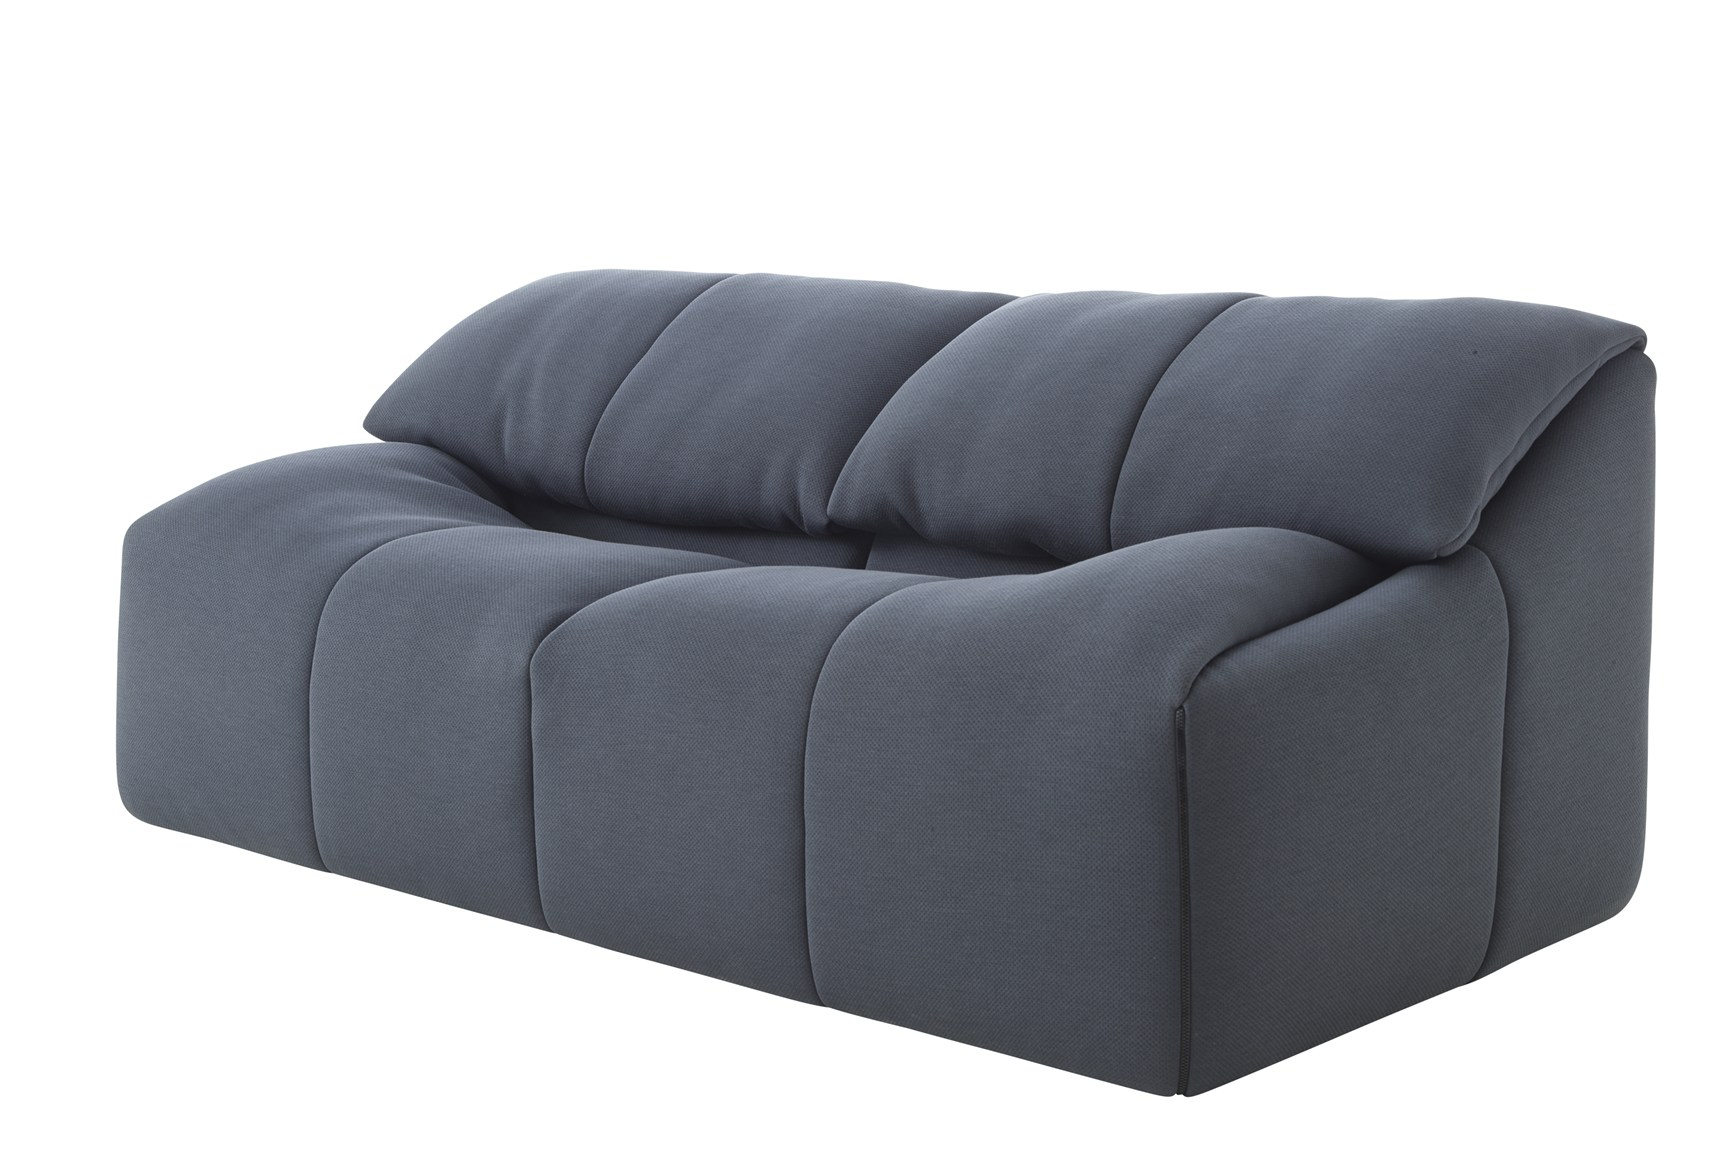 timeless design plumy sofa by annie hi ronimus for ligne. Black Bedroom Furniture Sets. Home Design Ideas